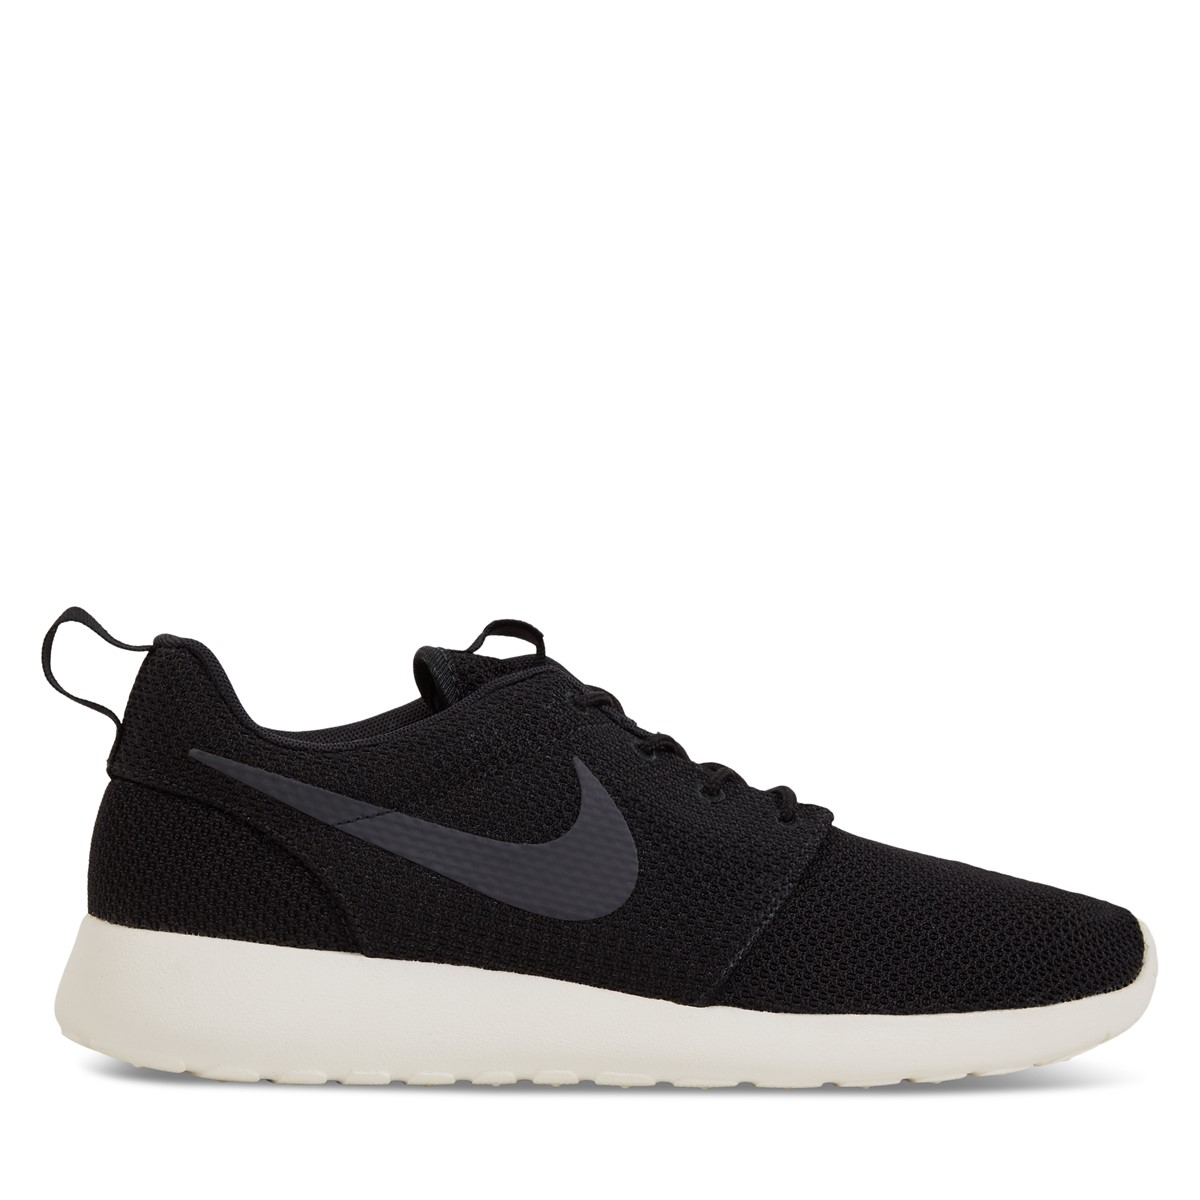 Men's Roshe One Black/White Sneaker